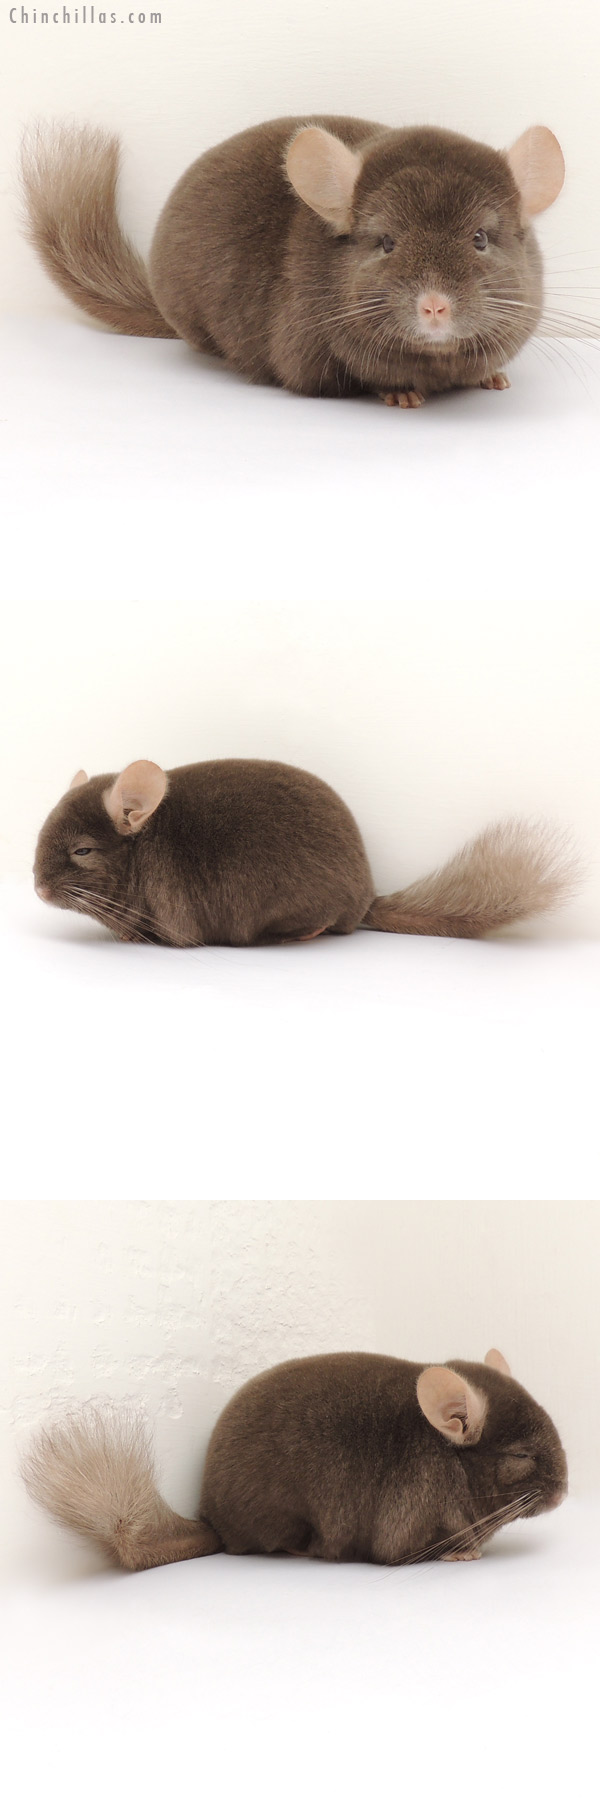 13299 Herd Improvement Quality Dark Tan Male Chinchilla